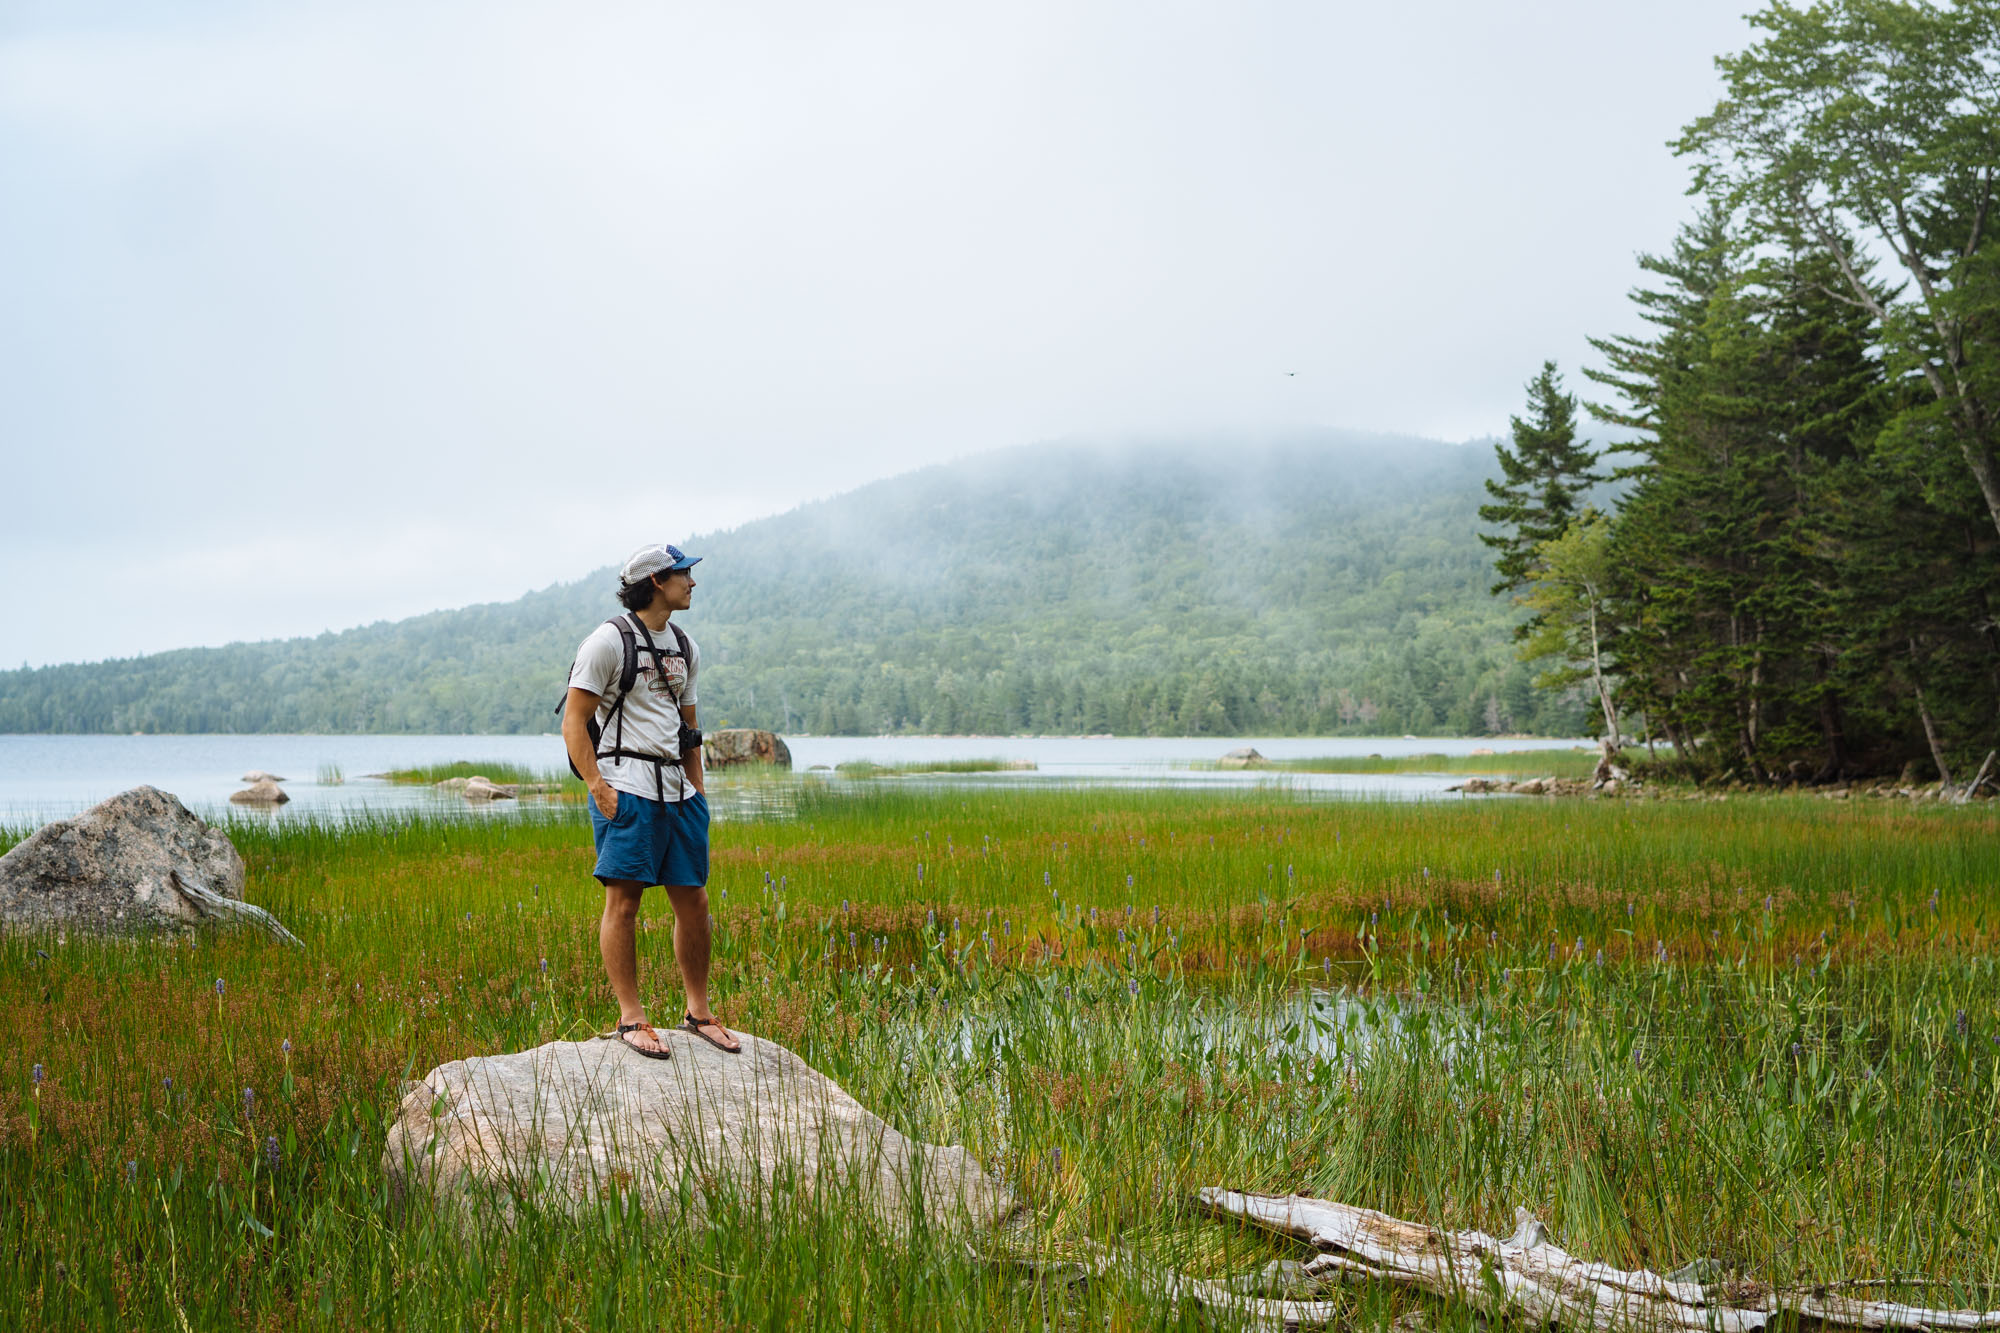 Owen at one of the many ponds in Acadia NP